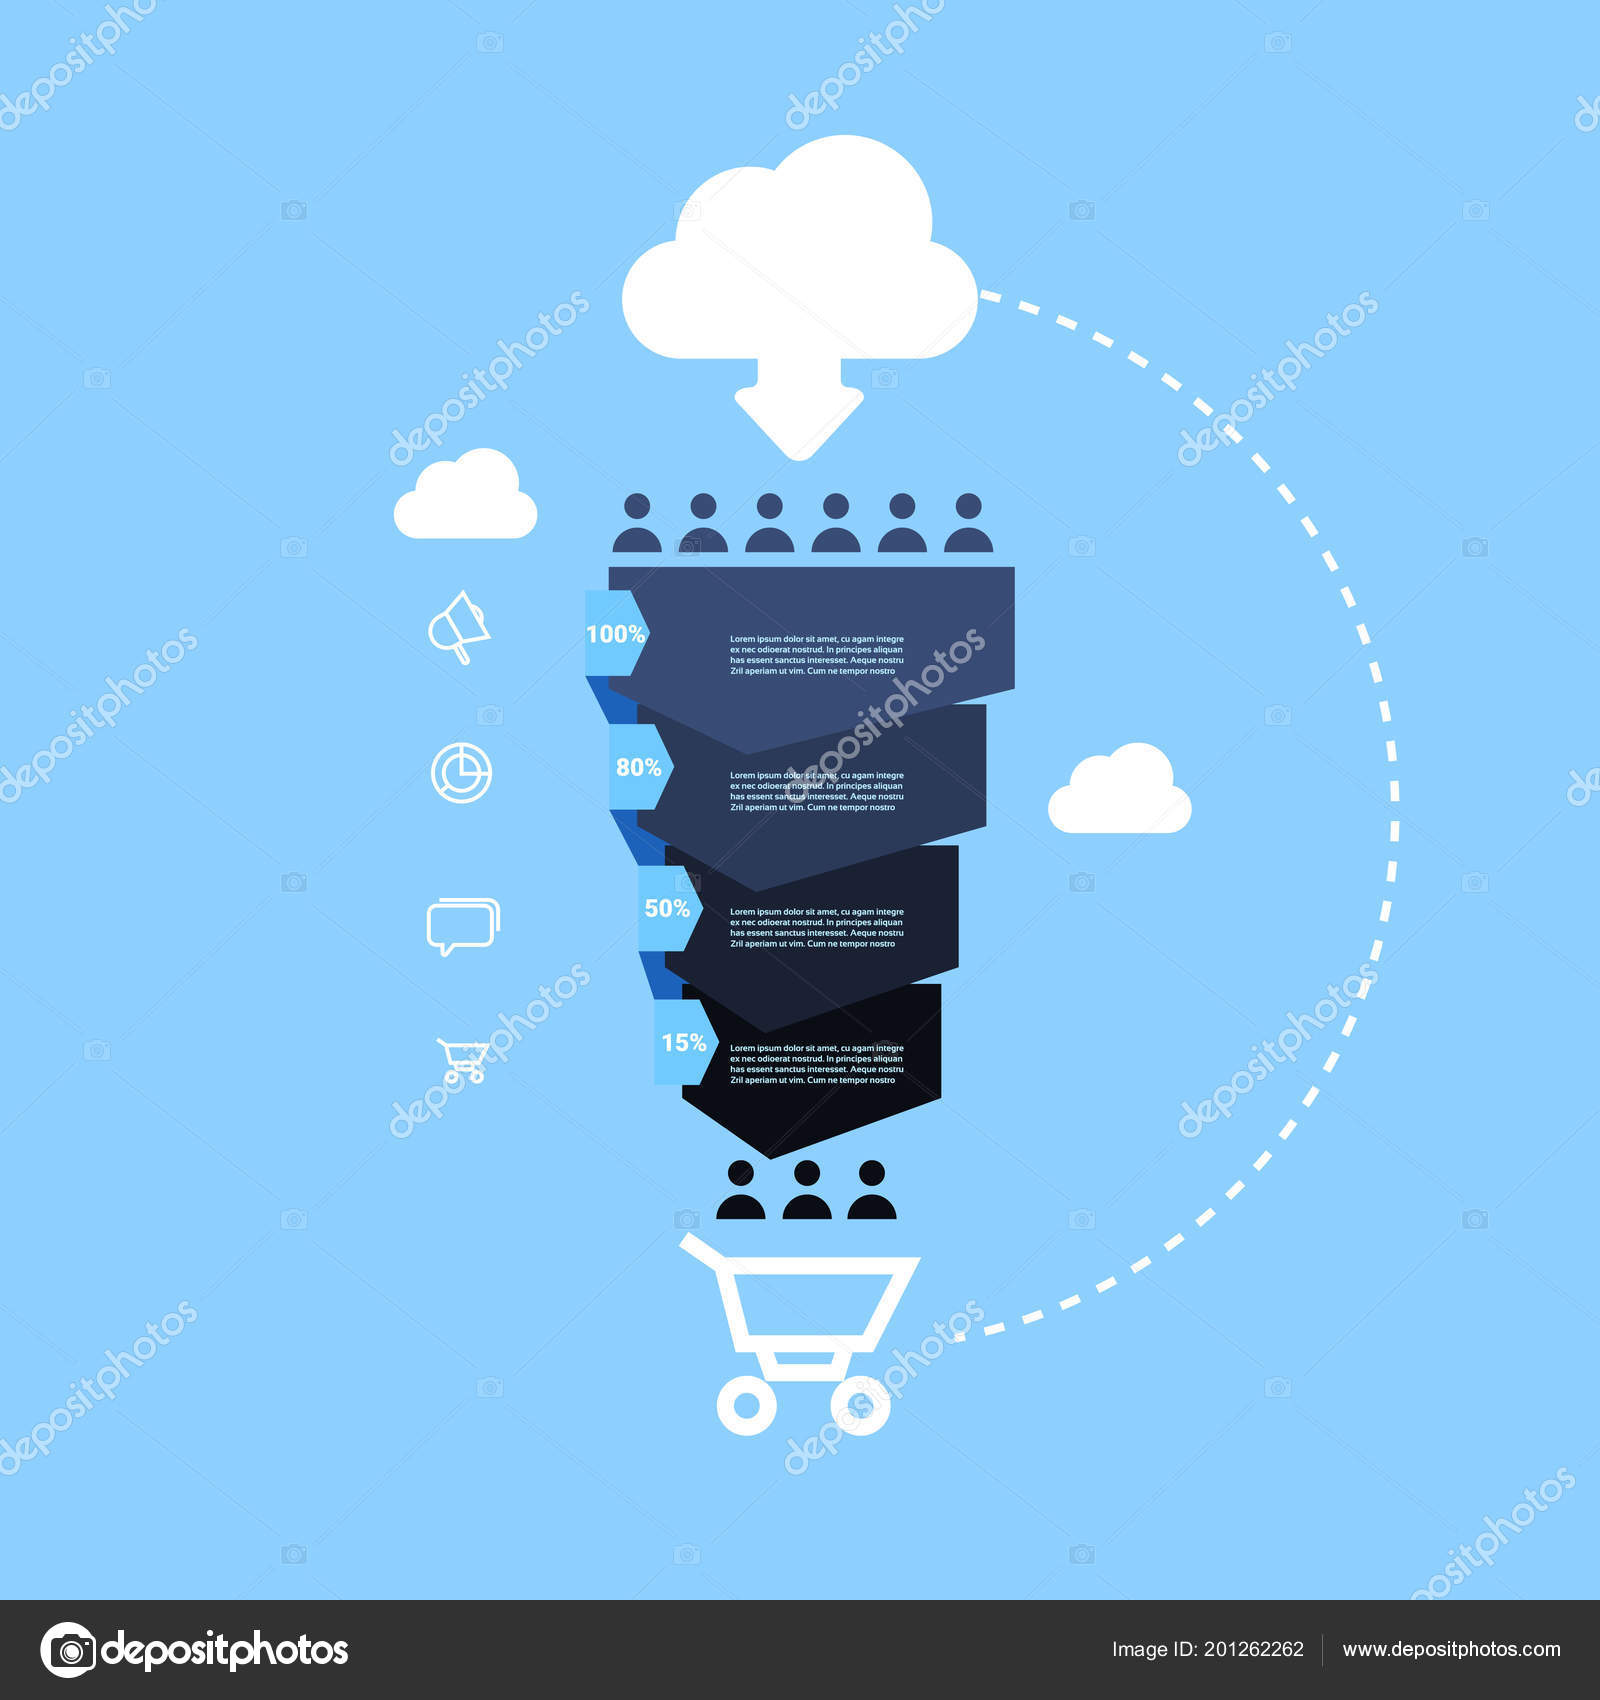 Sales Funnel With People Icon Online Cloud Shopping Cart Stages Diagram Business Infographic Purchase Concept